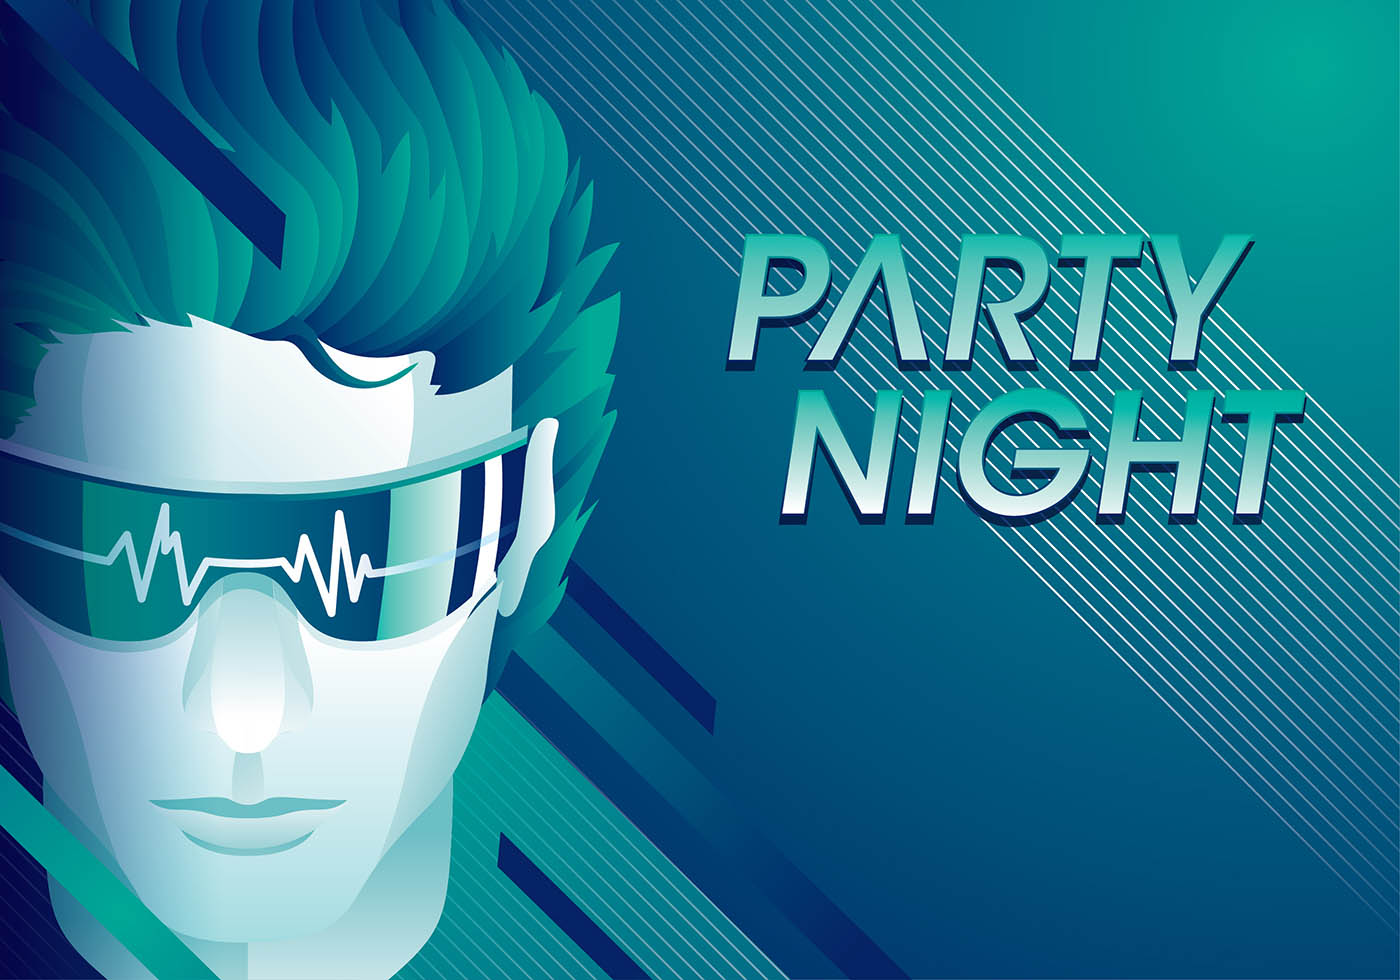 Flatline Party Night Free Vector - Download Free Vectors ...